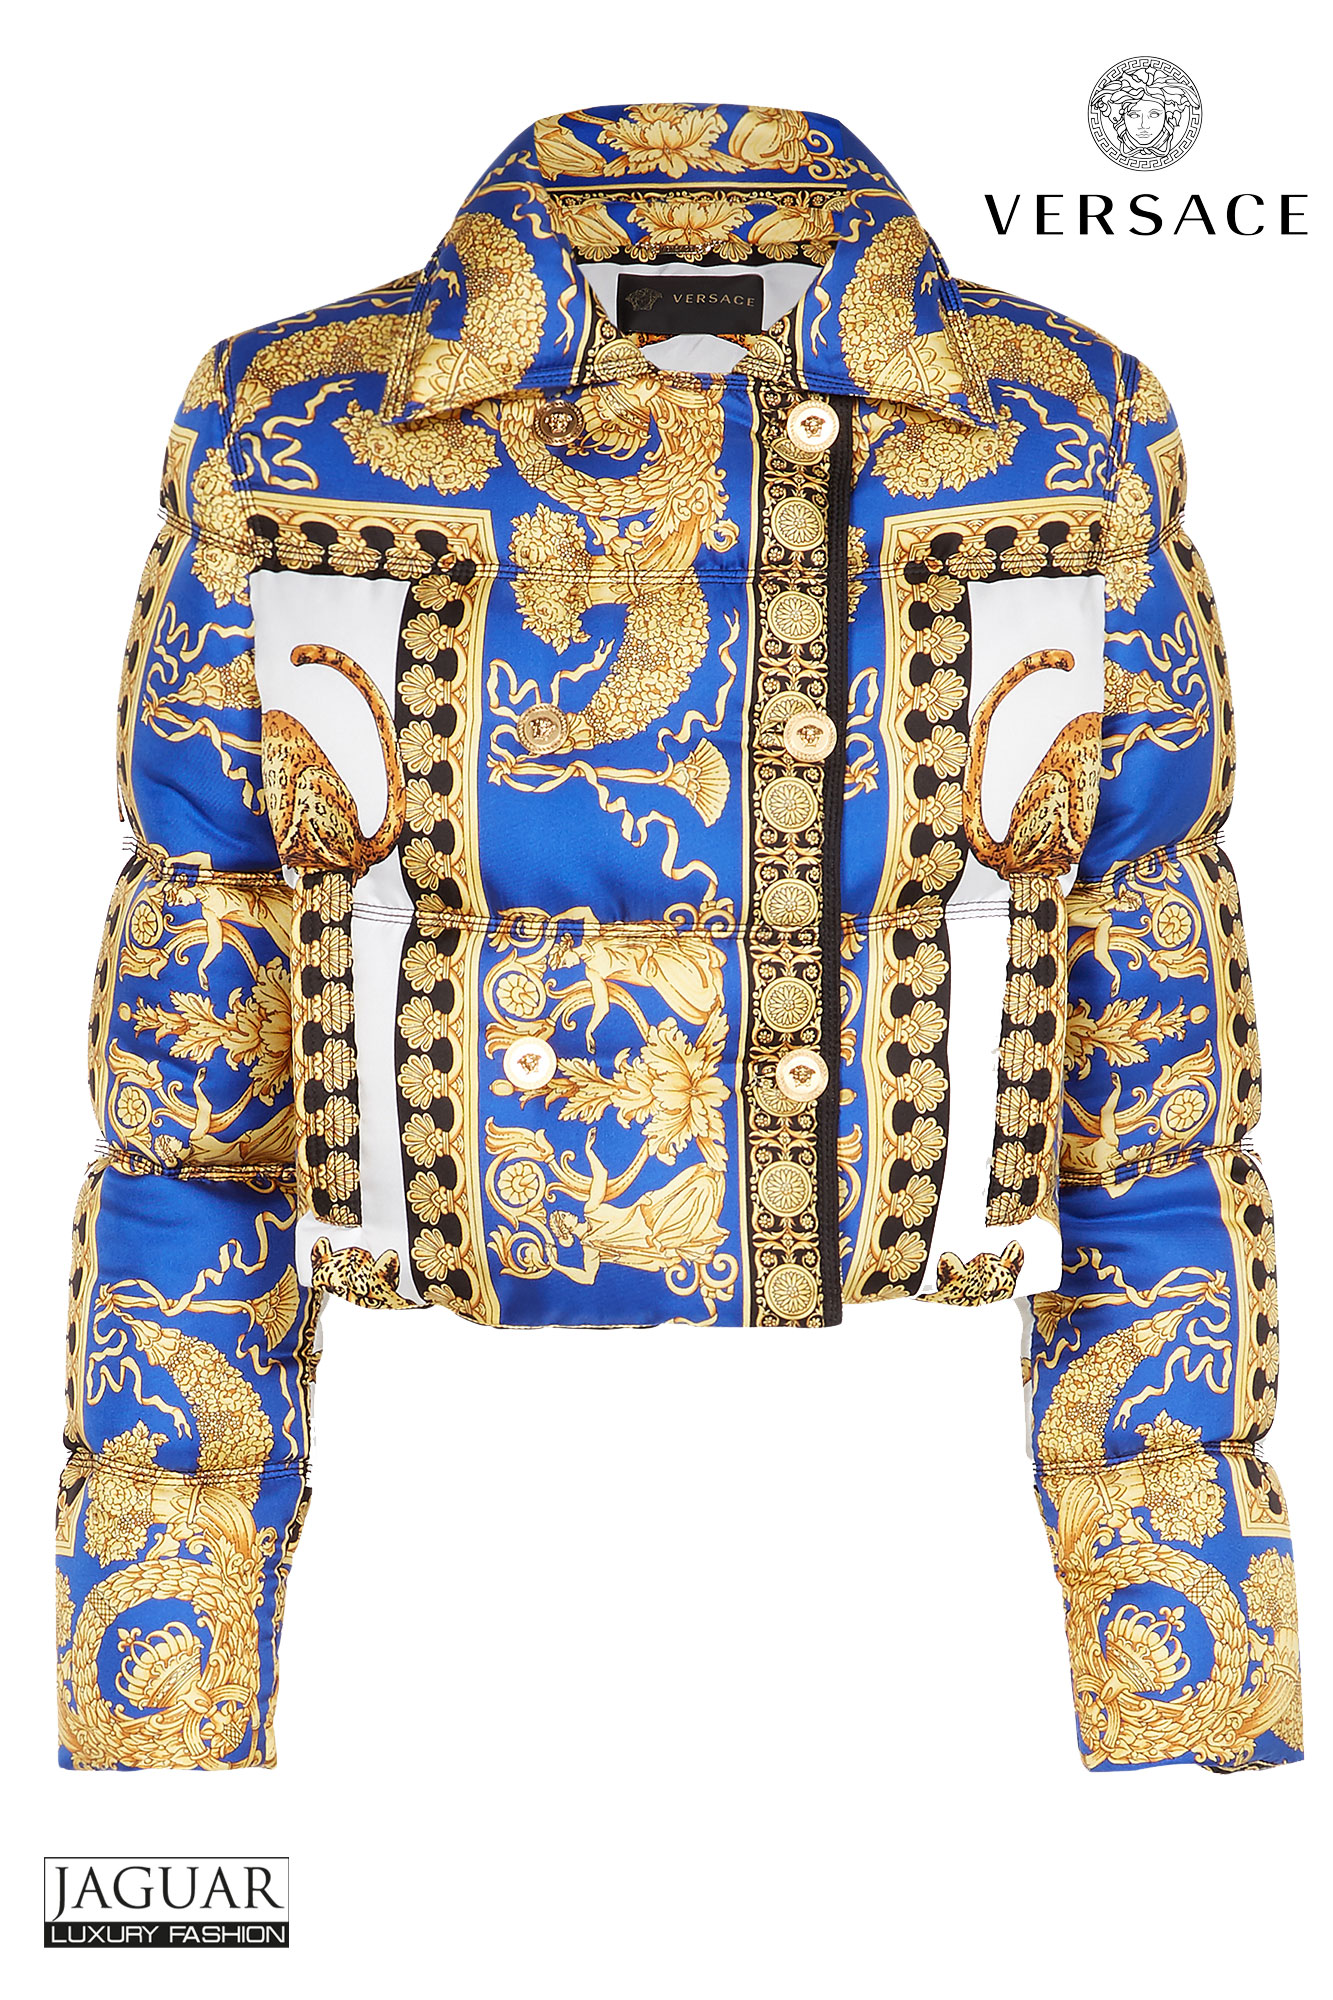 The Prints That Go Back To The Home Of Versace Jaguar Mode